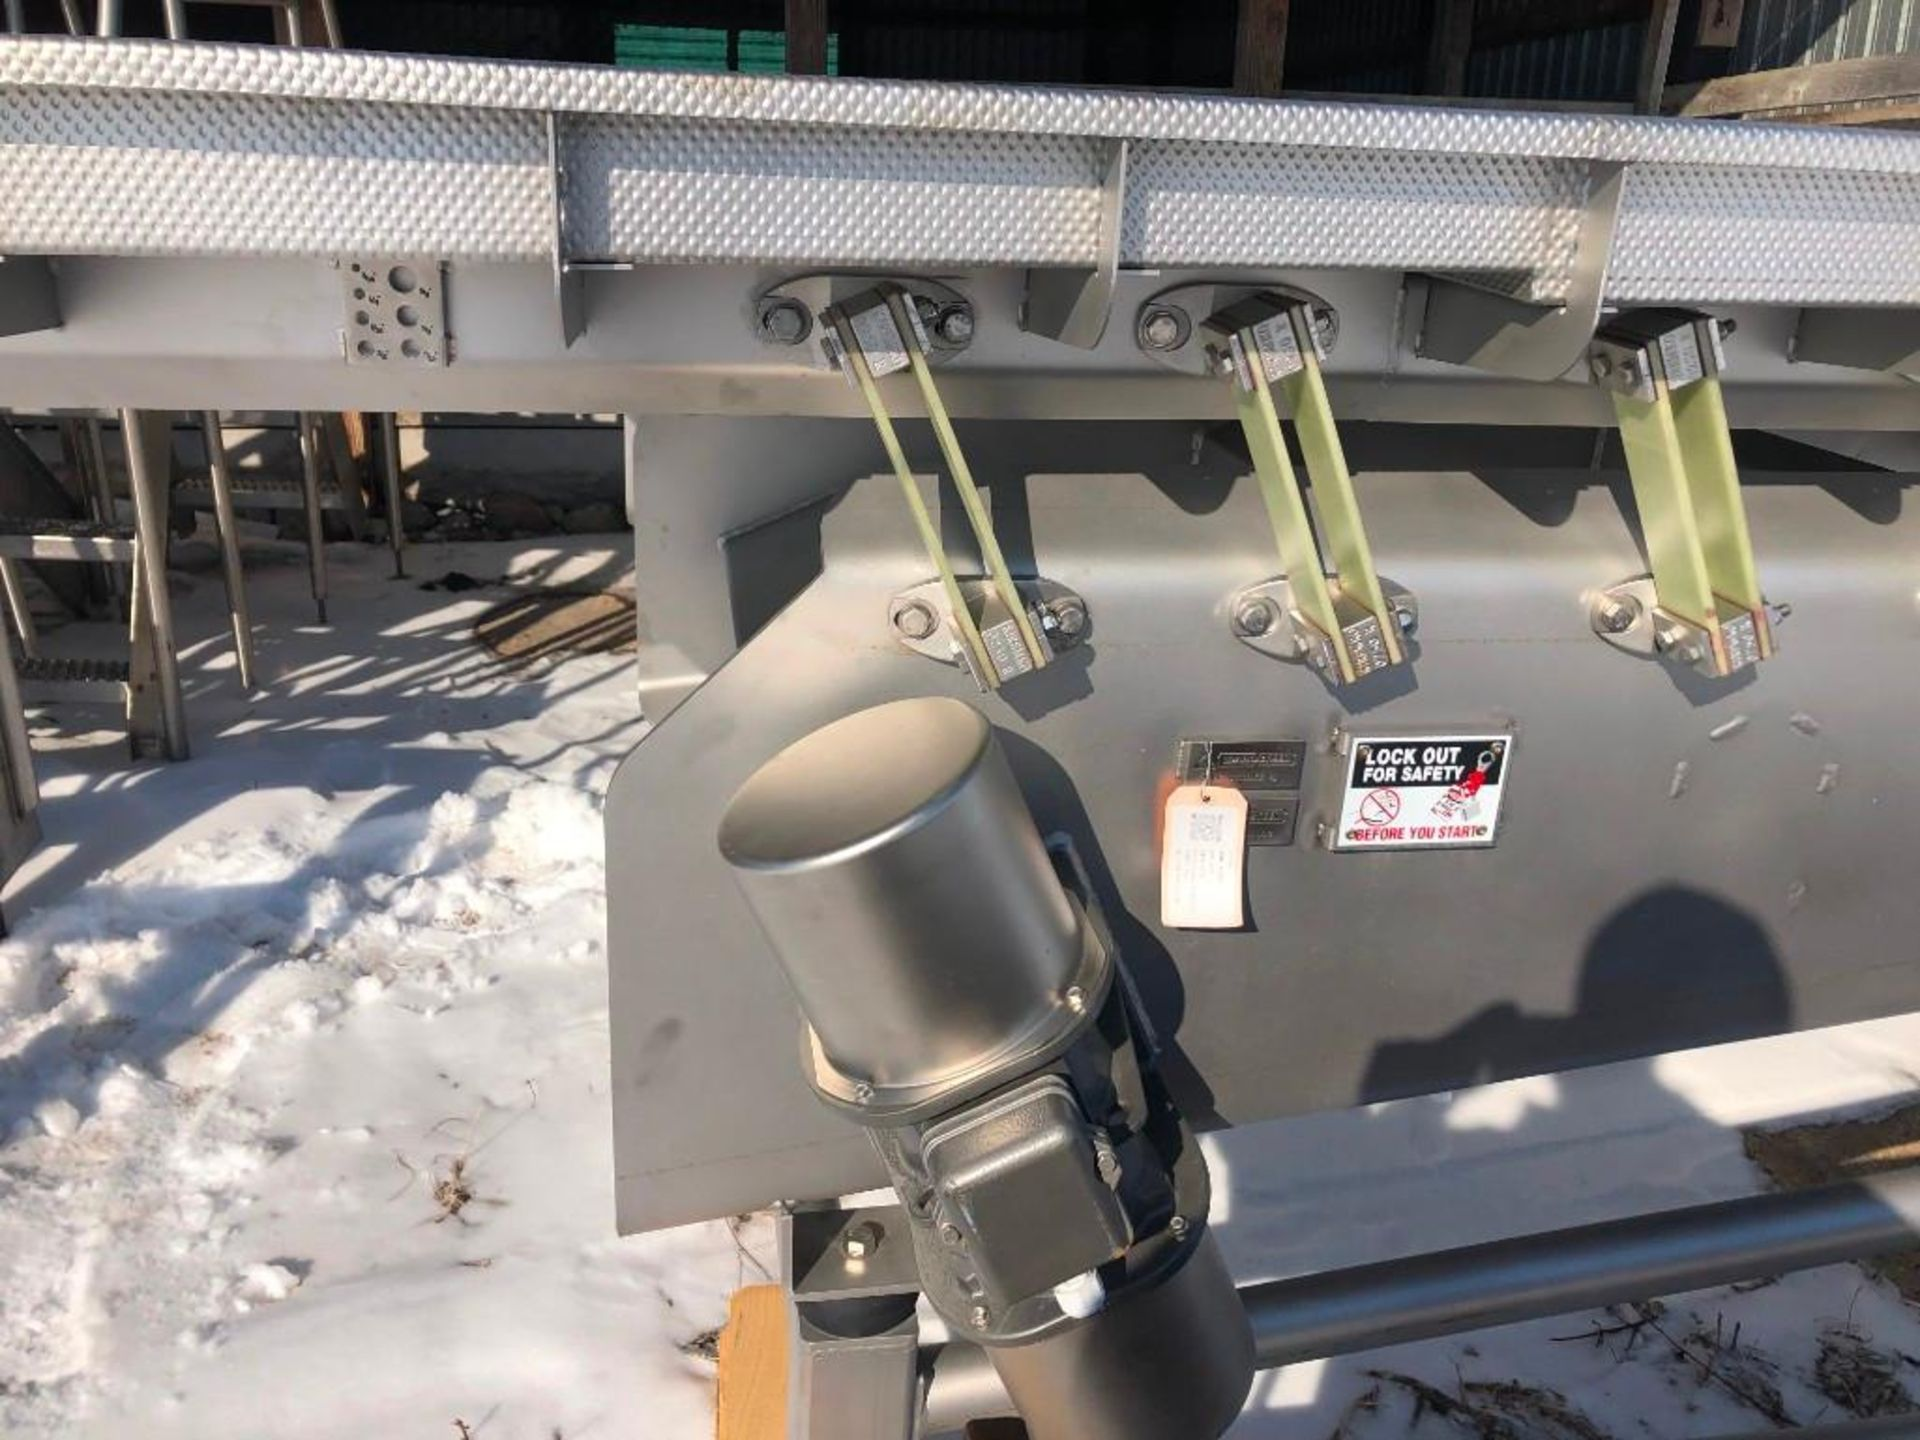 Reyco Systems stainless steel vibratory conveyor - like new - Image 11 of 23